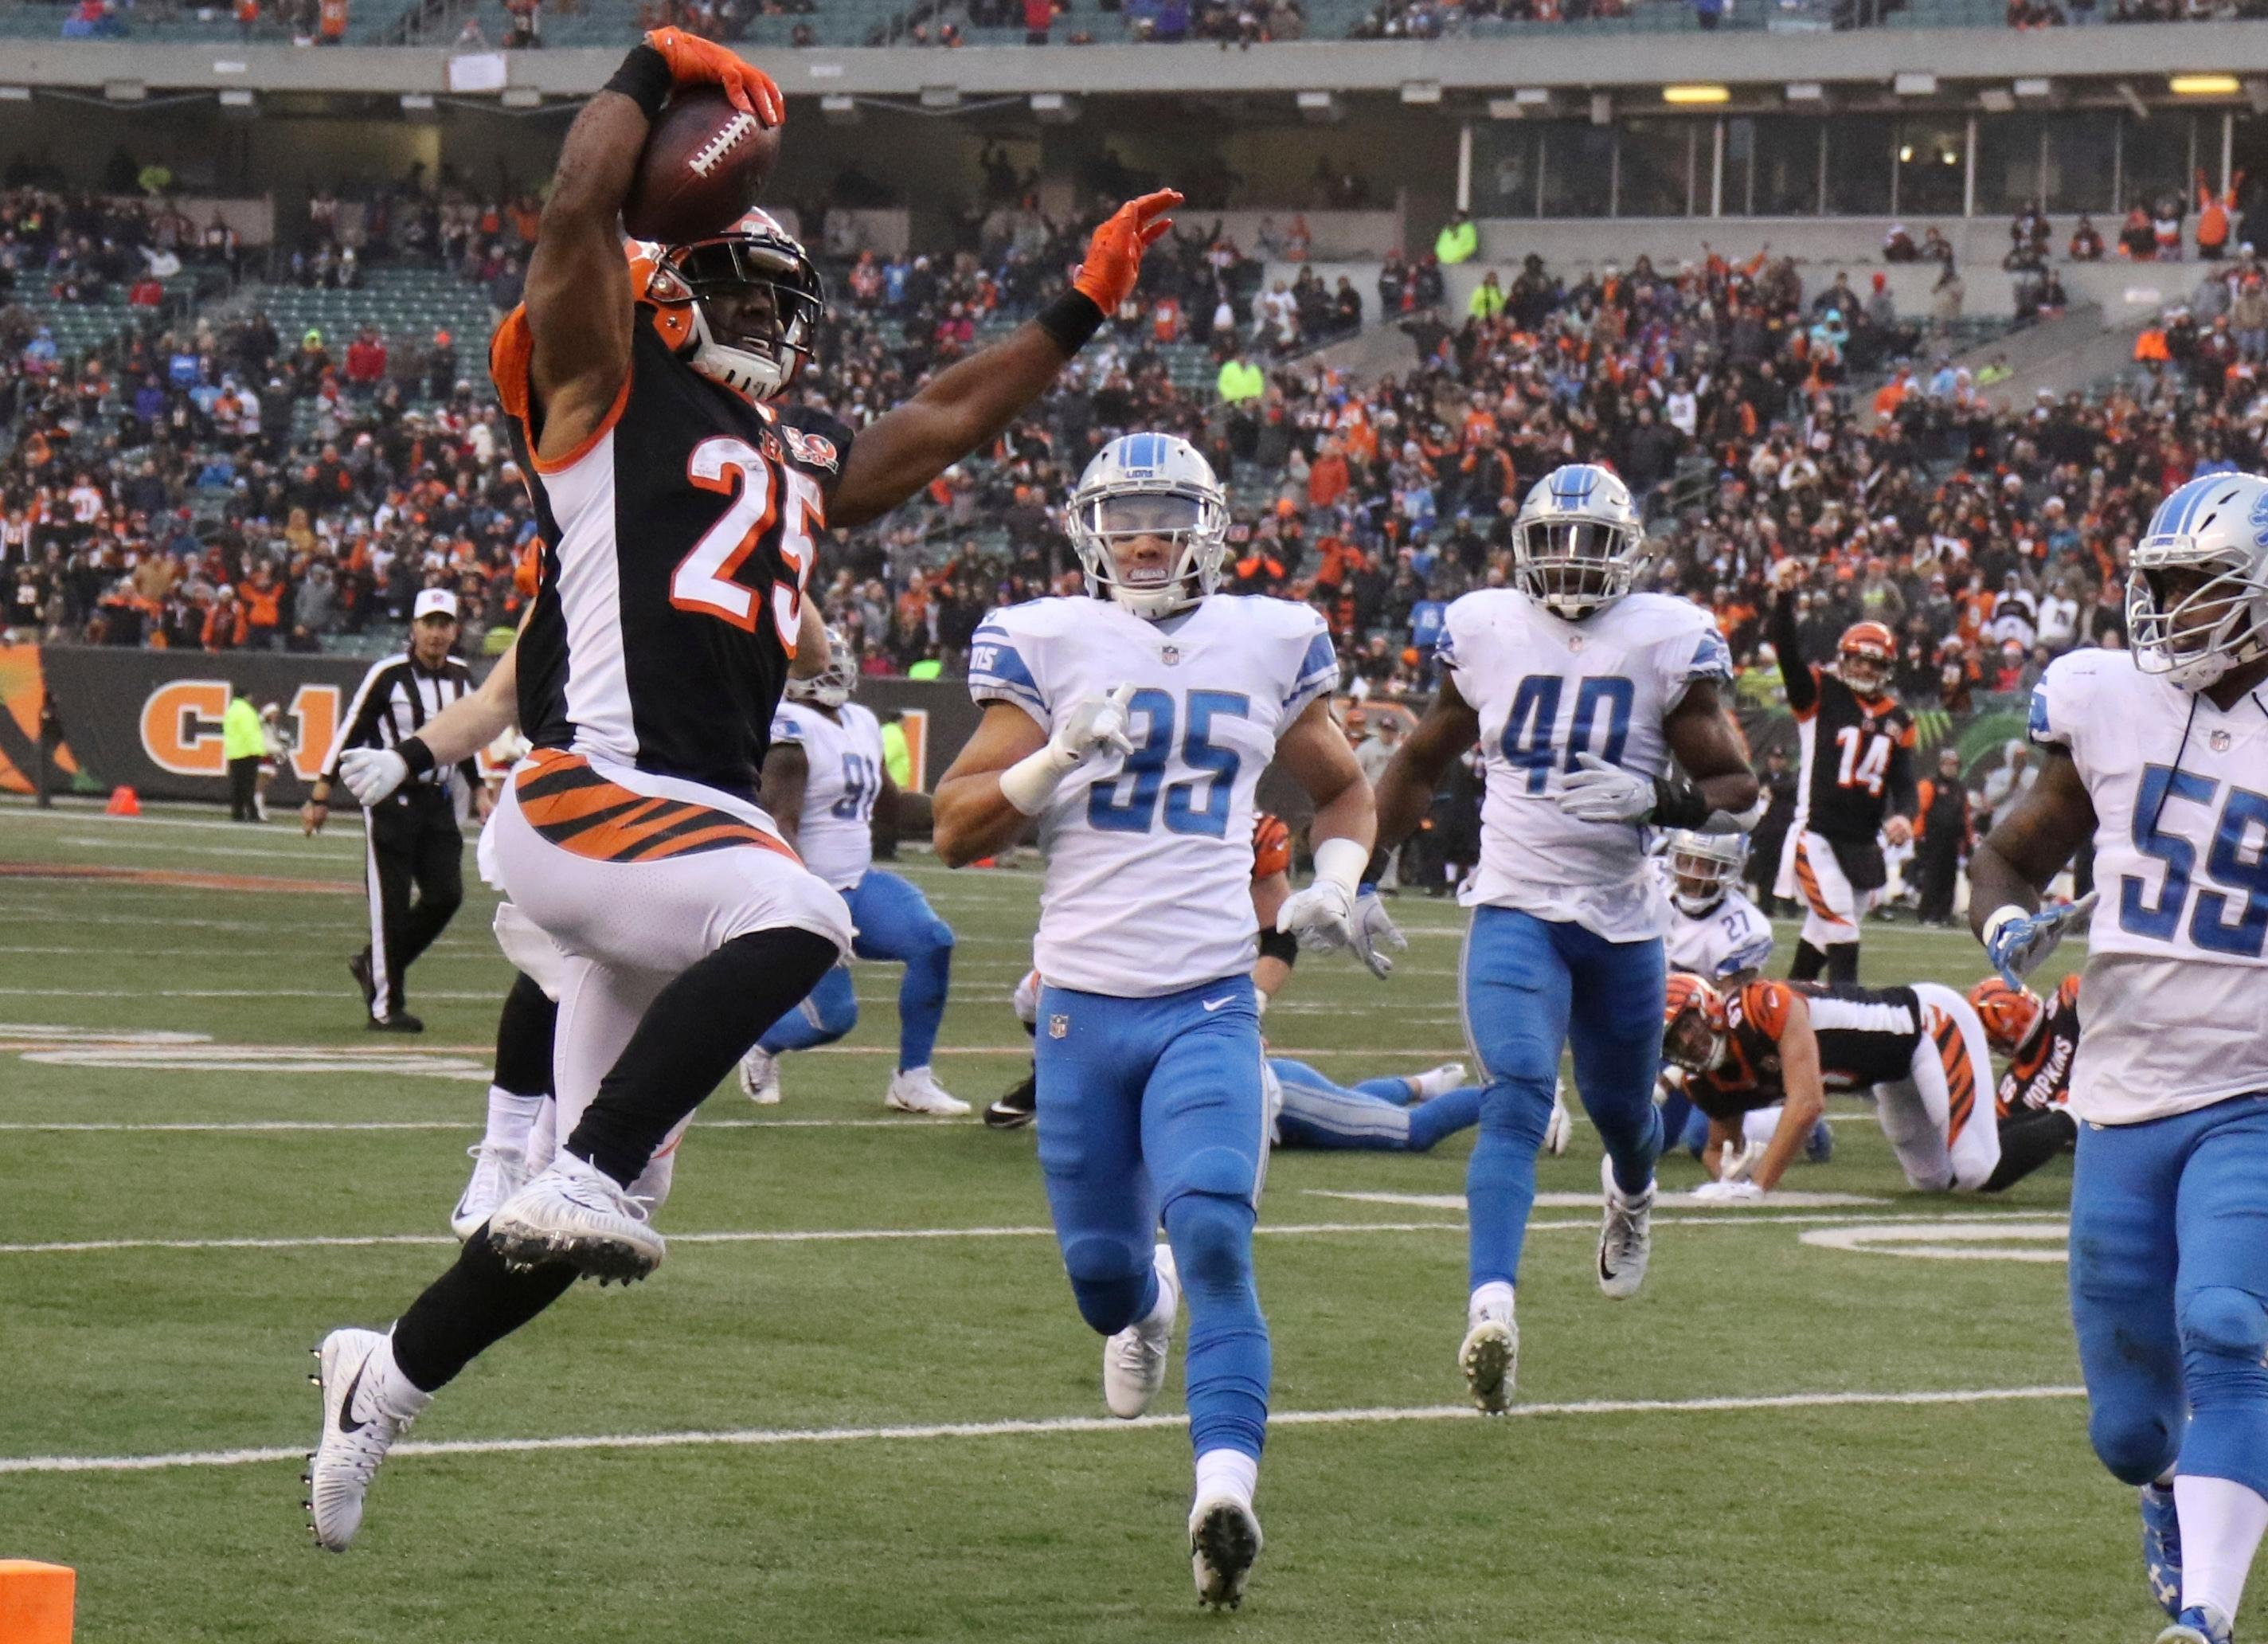 Cincinnati Bengals running back Giovani Bernard (25) jumps into the end zone for a 12-yard rushing touchdown during the second half of an NFL football game against the Detroit Lions, Sunday, Dec. 24, 2017, in Cincinnati. (AP Photo/Gary Landers)